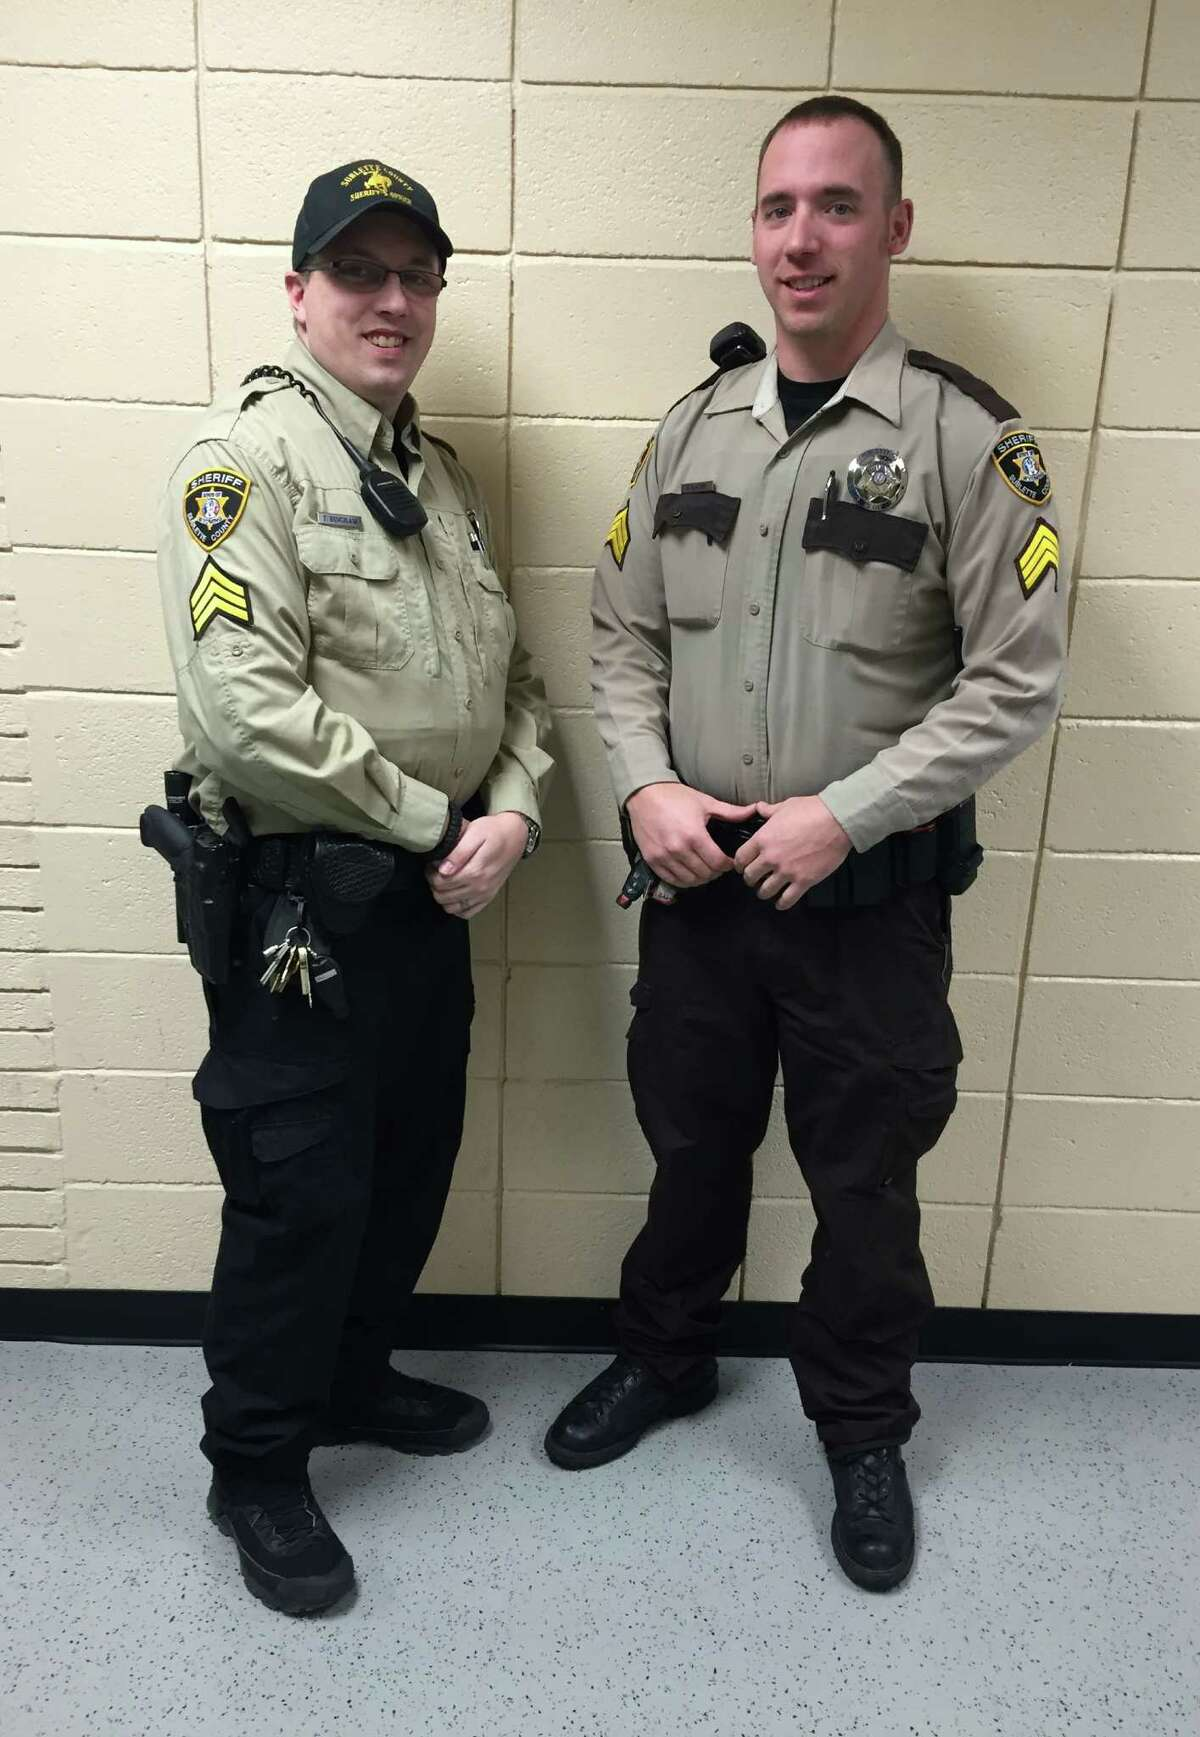 In this photo provided by the Sublette County Sheriff's Office, Detention Sergeant Travis Bingham, left and Patrol Sergeant Rich Kaumo pose in two of the different uniforms previously utilized by the Sublette County Sheriff at the Sheriff's Office on Monday, Feb. 2, 2015, in Pinedale, Wyo. The new sheriff of a Wyoming county has banned his deputies from wearing cowboy hats and cowboy boots, a change that led one longtime deputy to retire rather than give up his Western attire. Sublette County Sheriff Stephen Haskell imposed the new dress code in the western Wyoming county that includes Pinedale, which True West magazine recently named a true Western town.